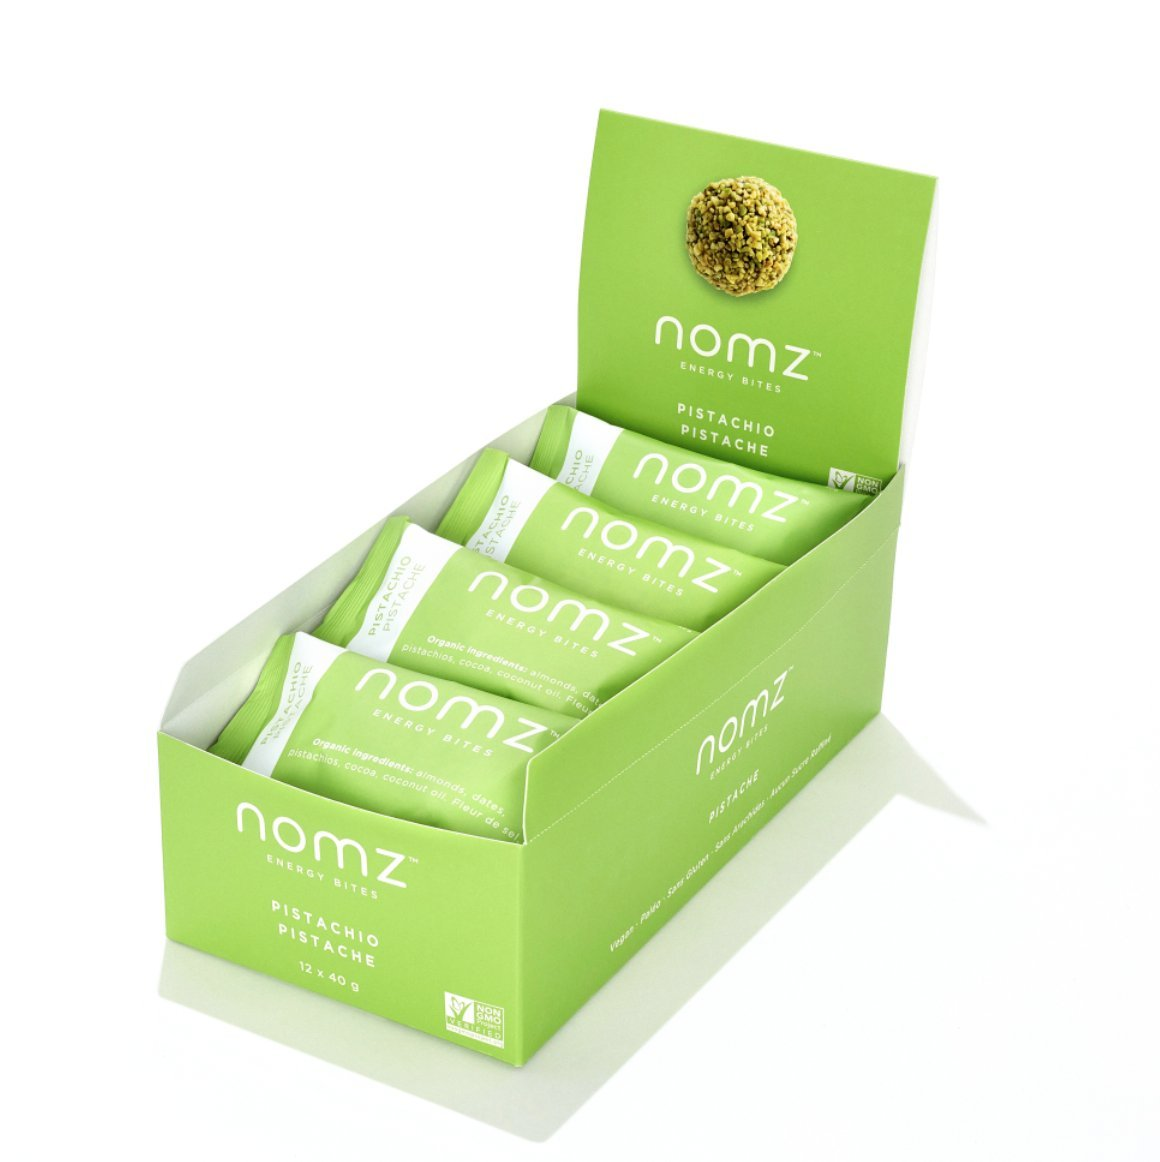 Nomz Energy Bites, PISTACHIO, 1.4 Ounce (12 pouches / 24 energy bites) Certified Organic, Vegan, Gluten Free, Paleo, Non GMO. A healthy snack and a delicious alternative to energy bars. by Nomz